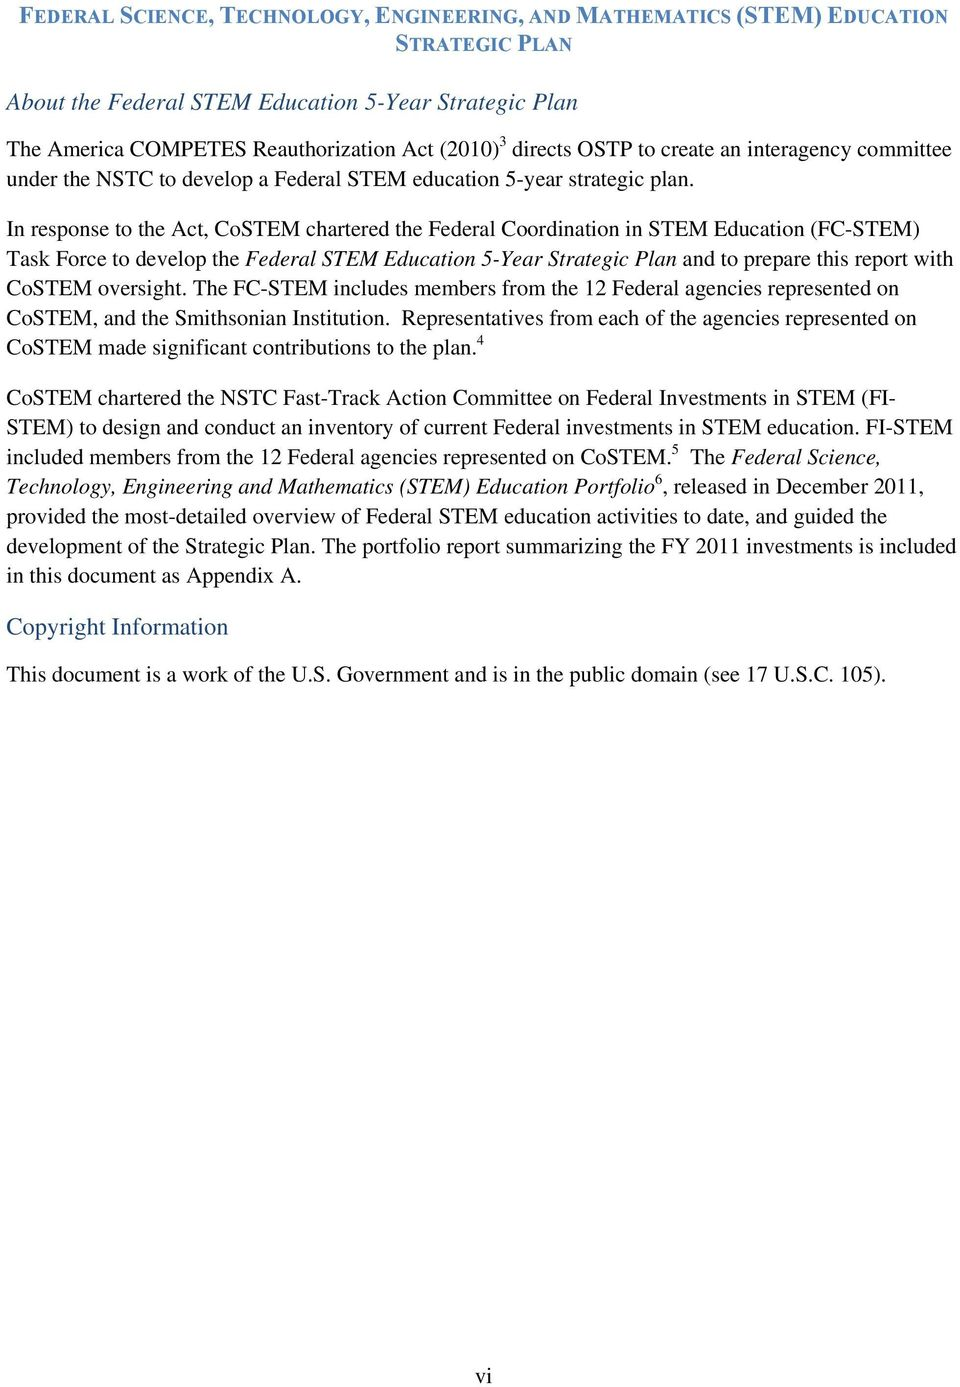 In response to the Act, CoSTEM chartered the Federal Coordination in STEM Education (FCSTEM) Task Force to develop the Federal STEM Education 5Year Strategic Plan and to prepare this report with